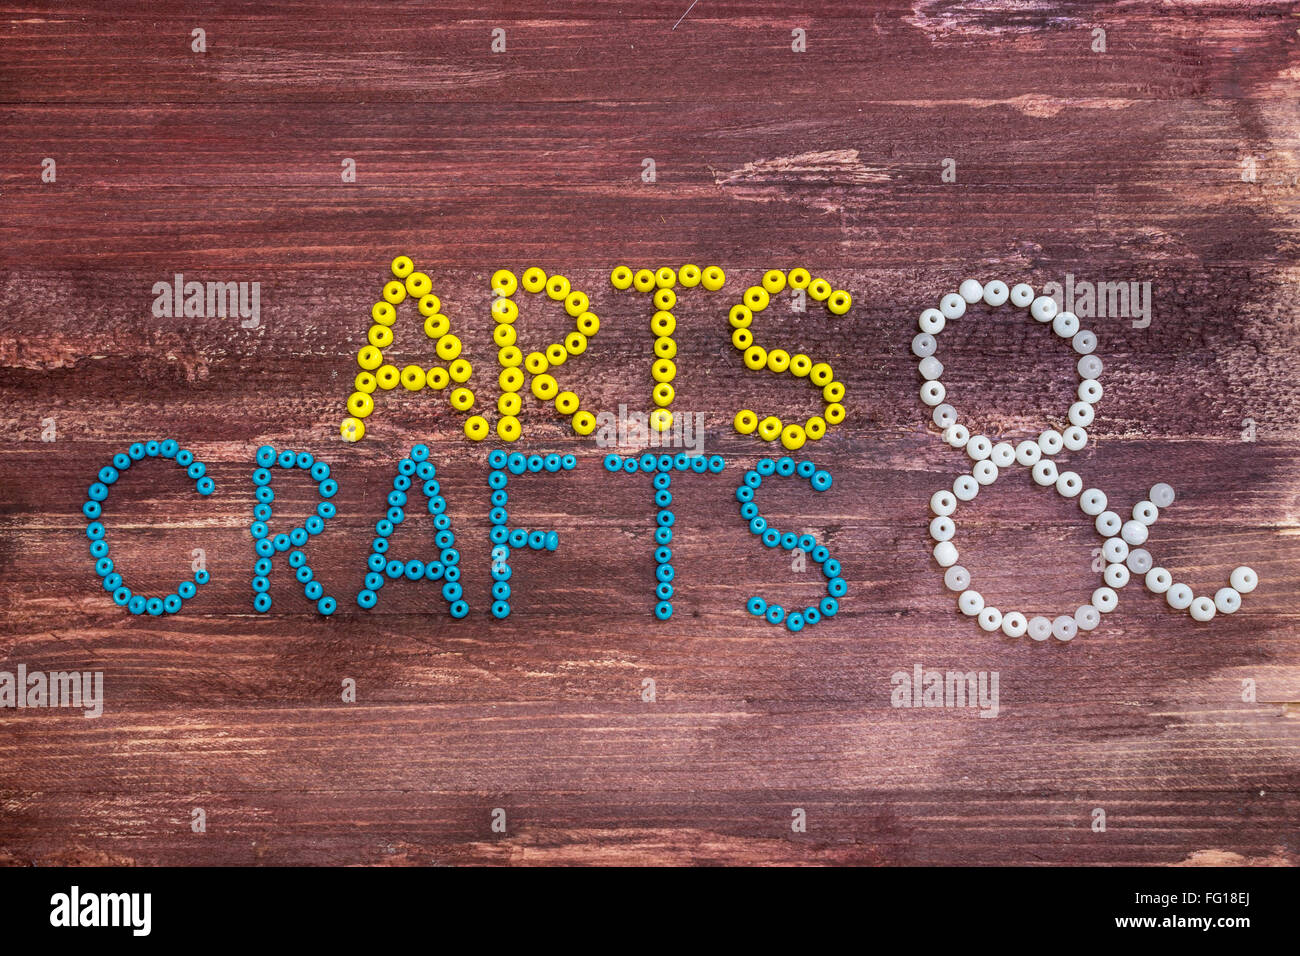 Arts Crafts Written With Beads On A Wooden Background Stock Photo Alamy